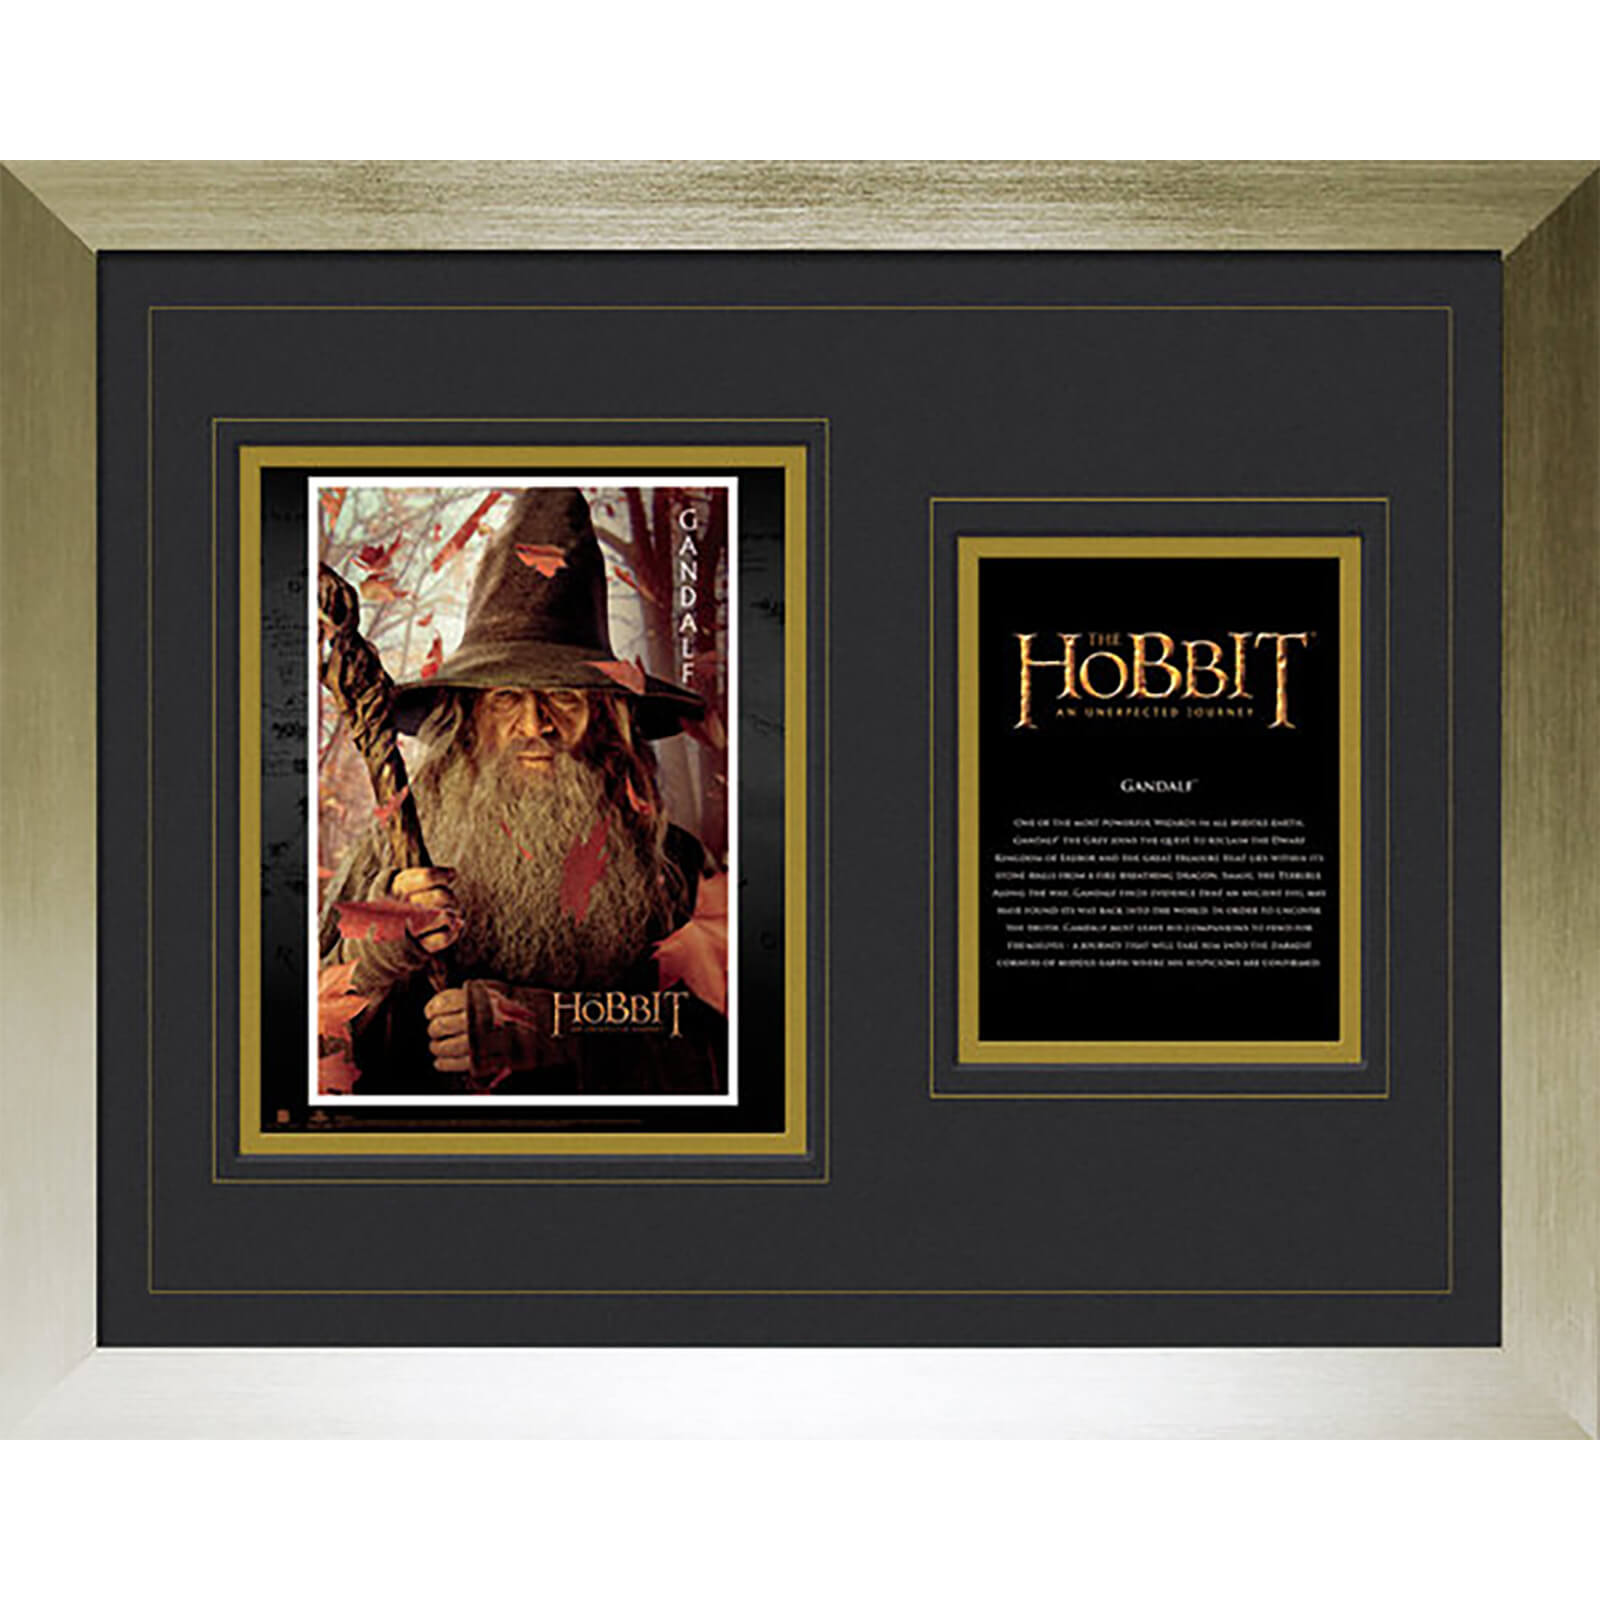 "The Hobbit Gandalf - High End Framed Photo - 16"""" x 20"""